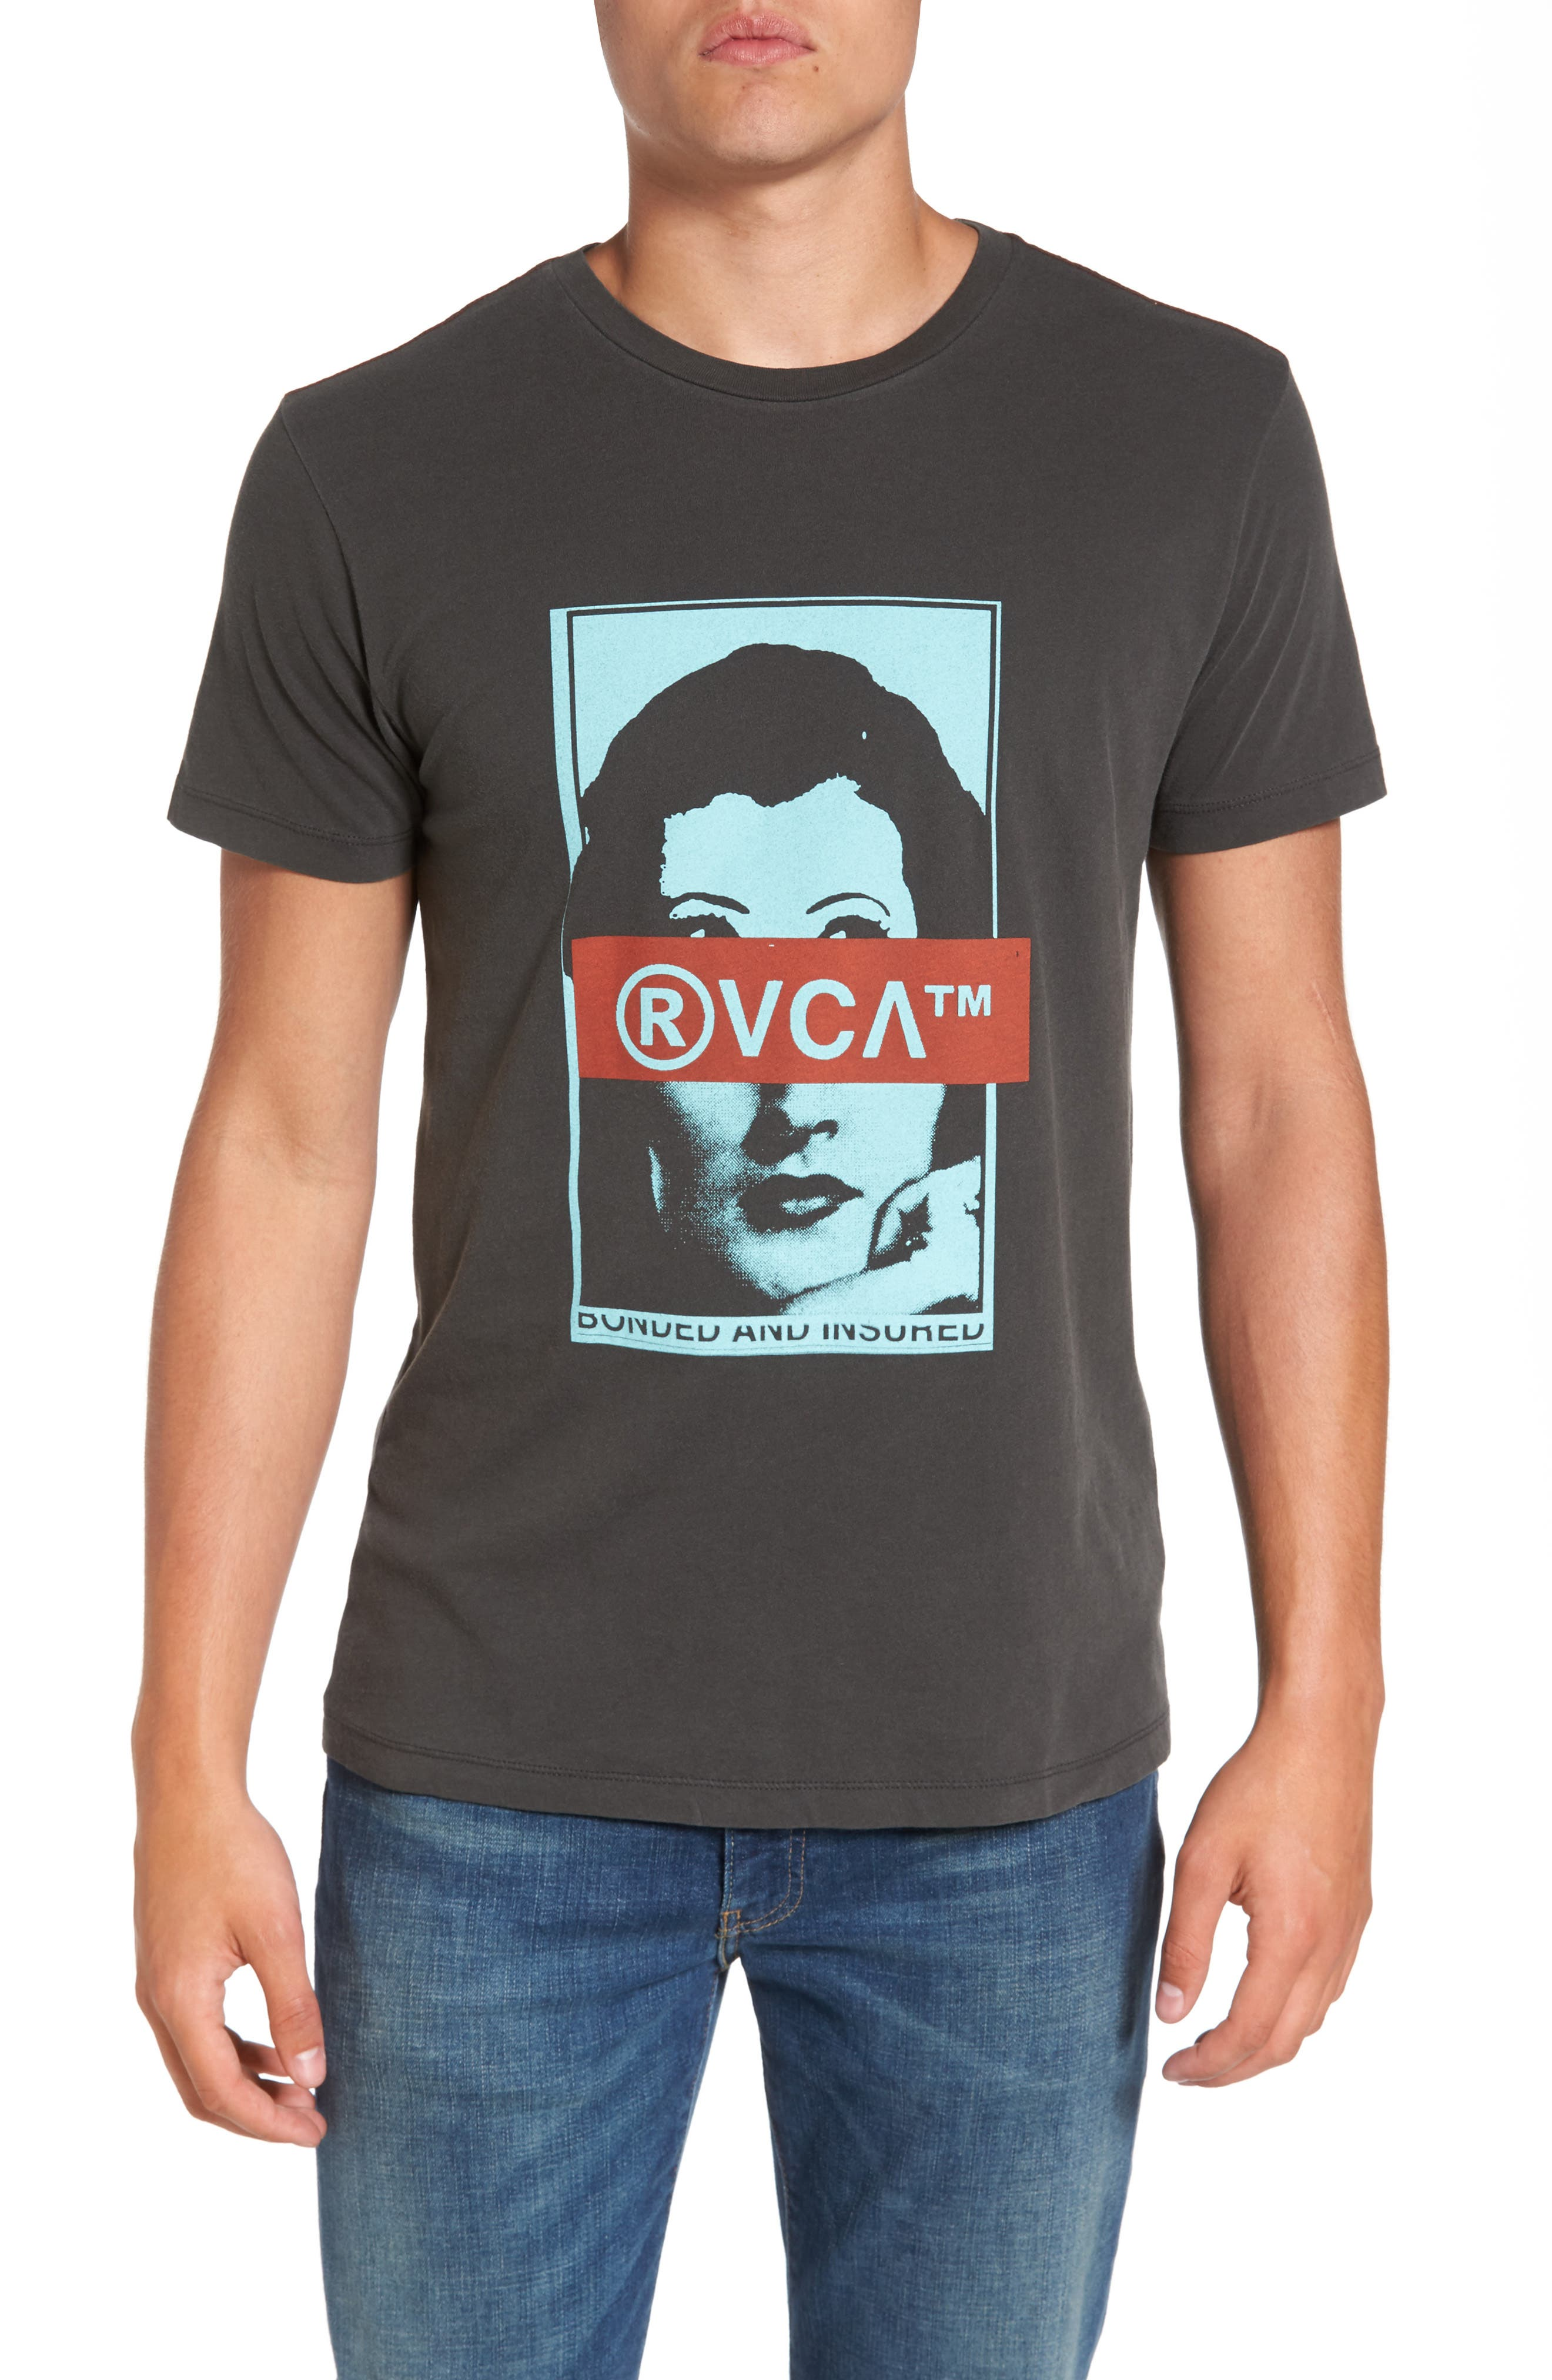 RVCA Split Frames Graphic T-Shirt